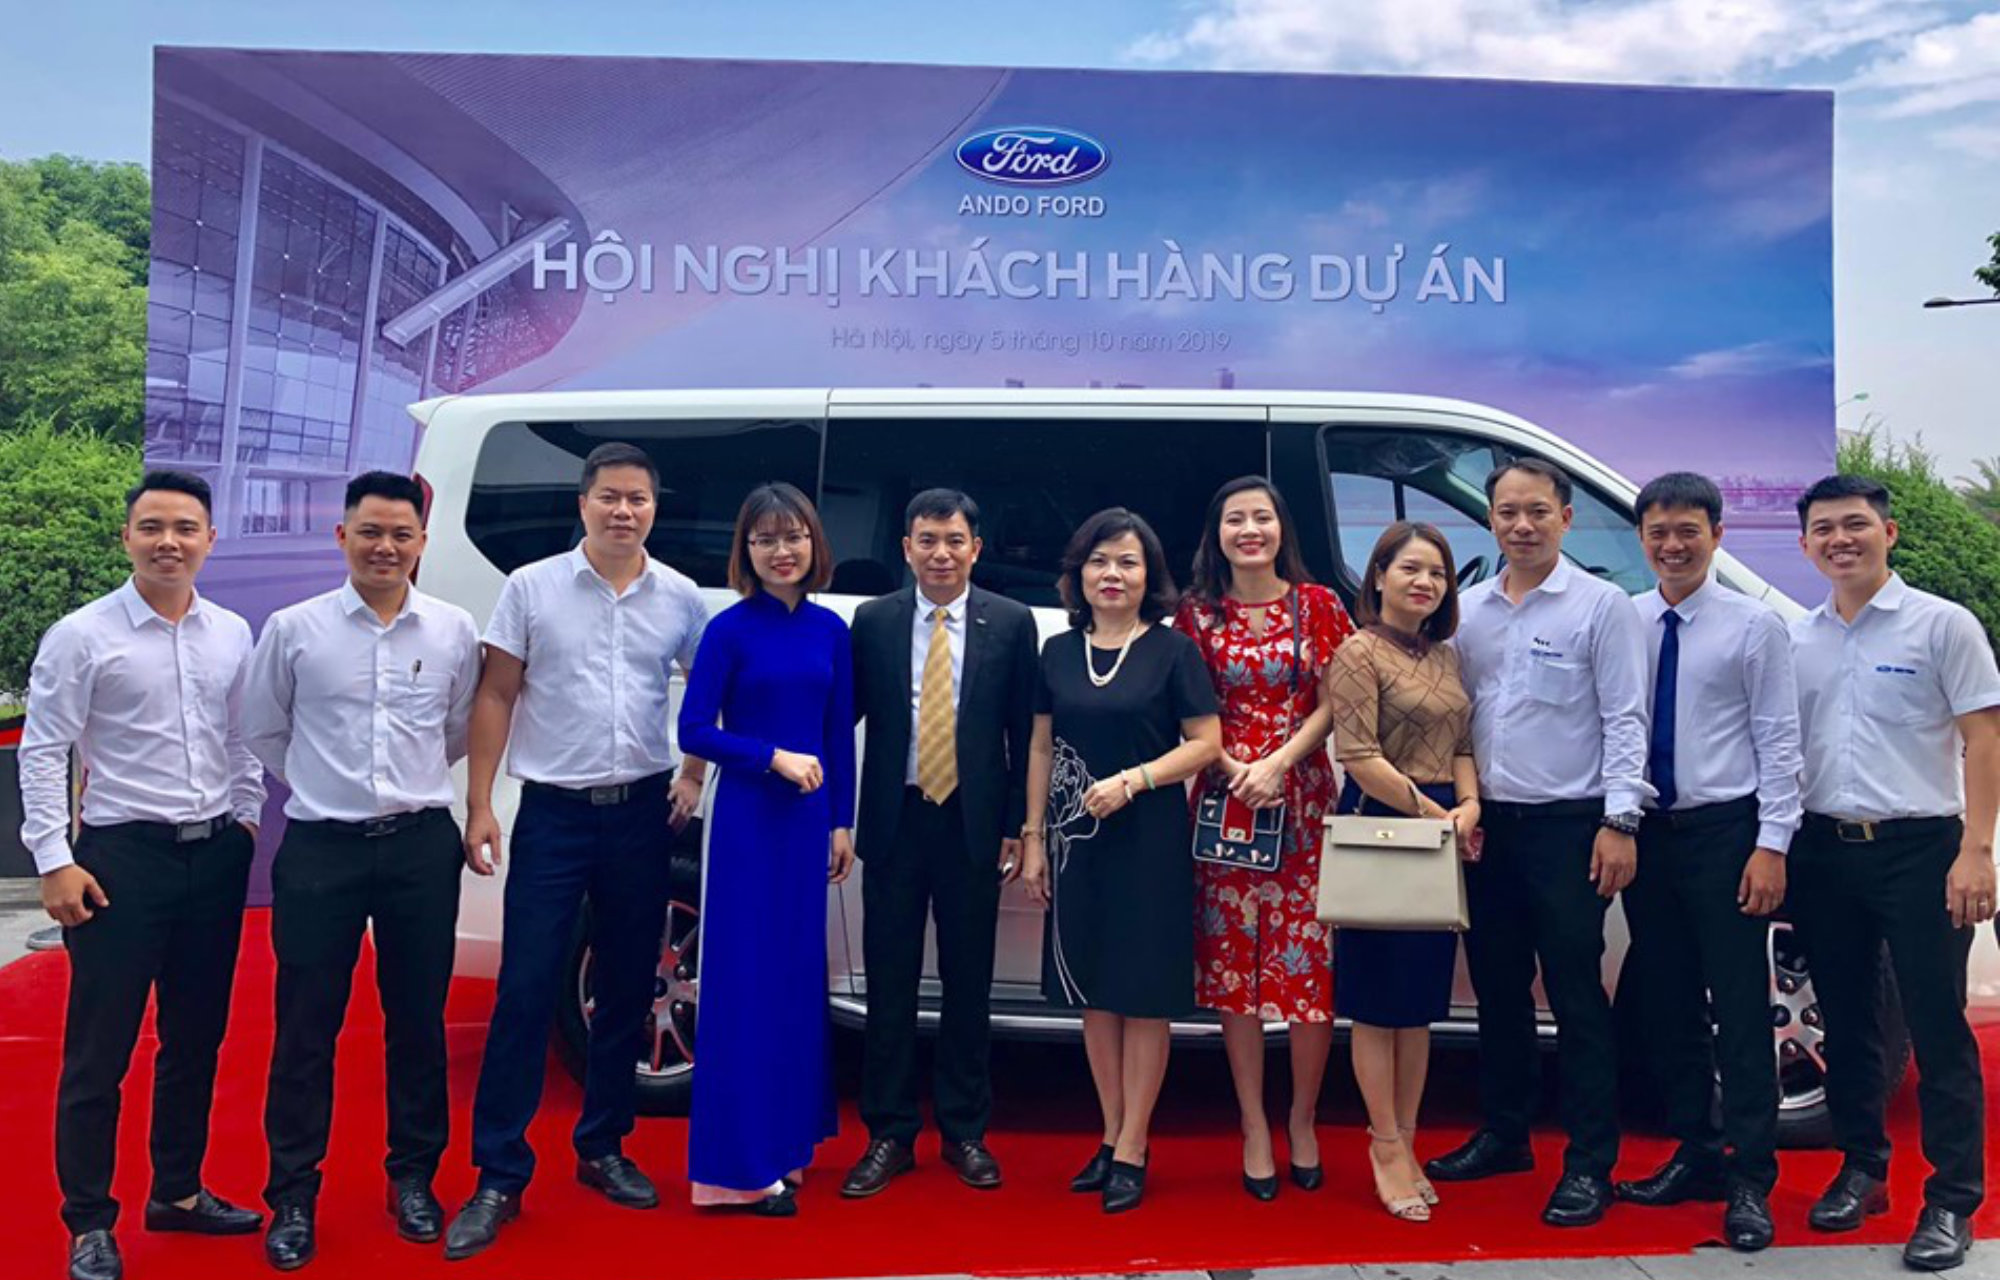 hoi-nghi-khach-hang-du-an-an-do-ford